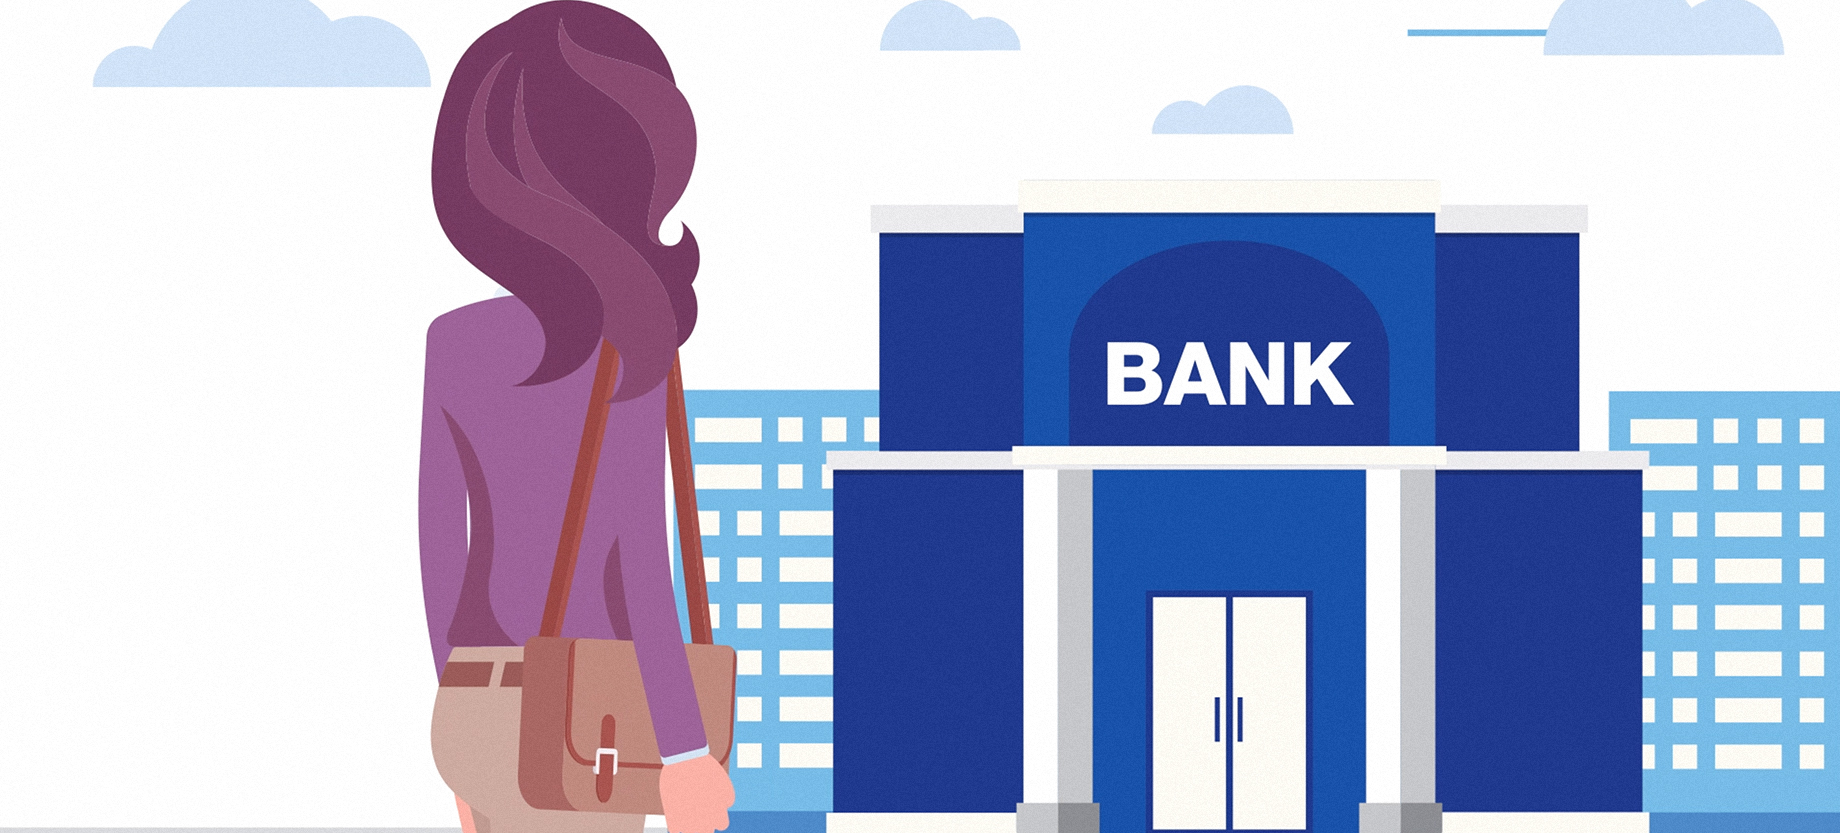 Character Animation For US Bank